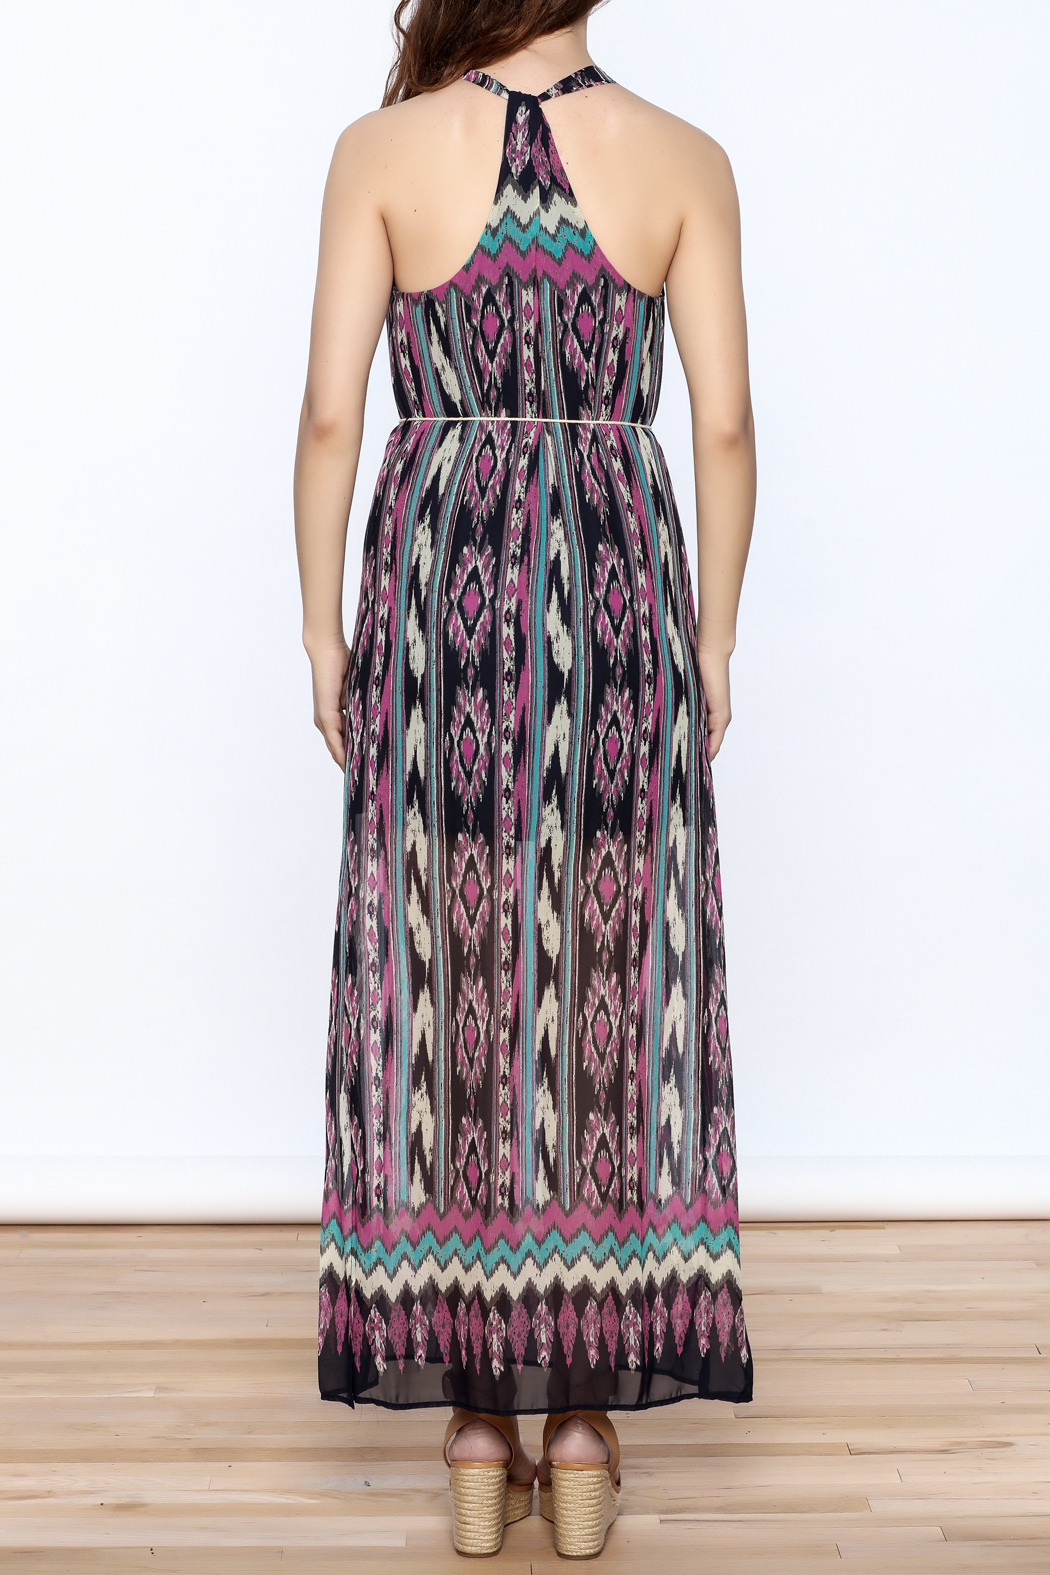 Rousseau Tribal Maxi Dress from Long Island by EPIC Stores ...